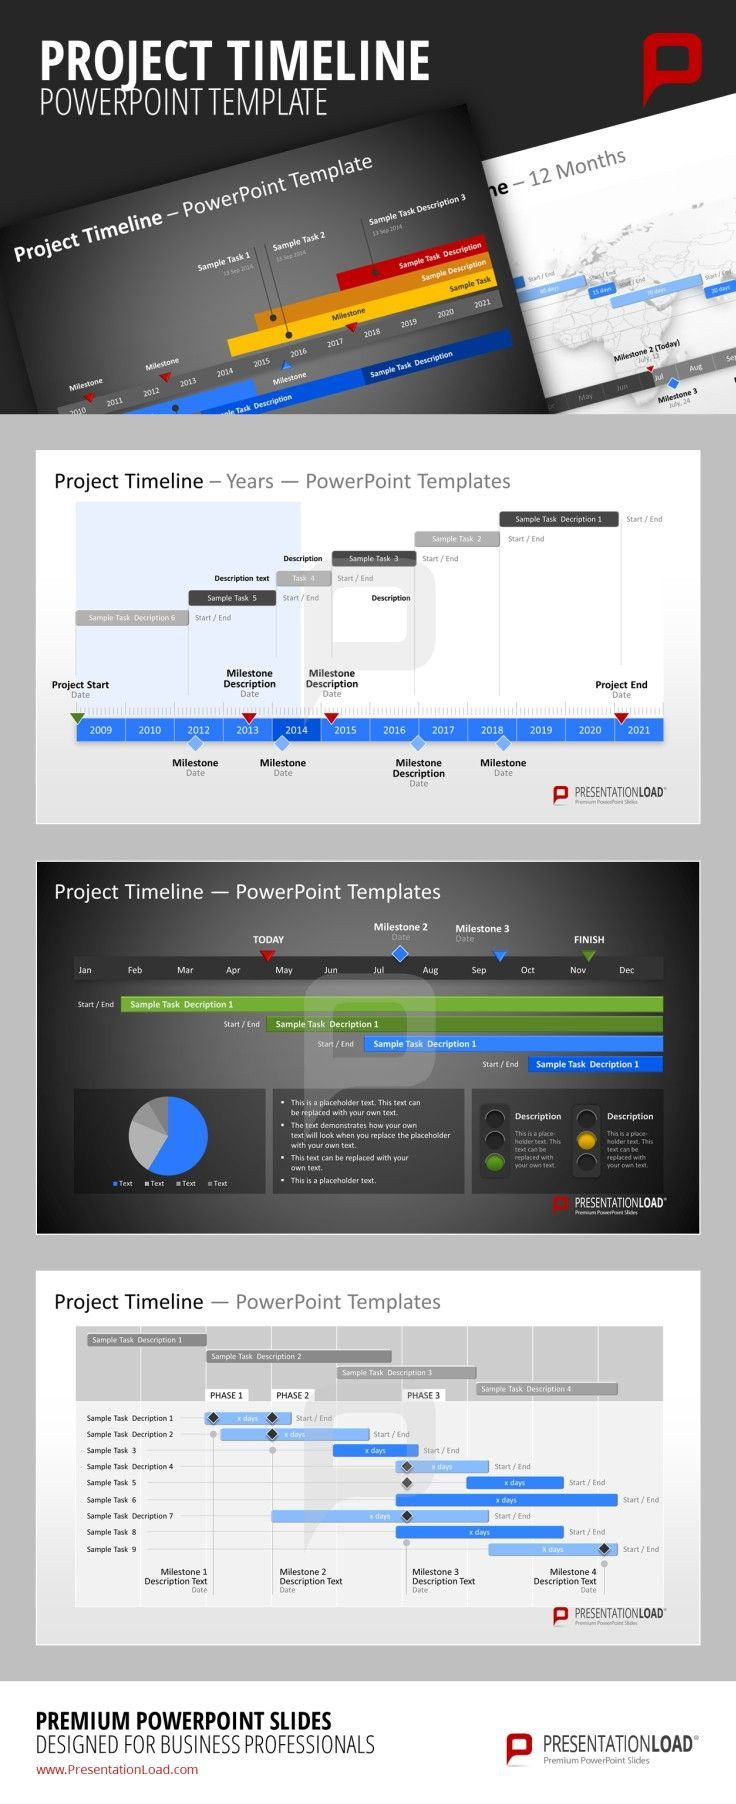 Project Timeline PPT Example Template Project Timeslines